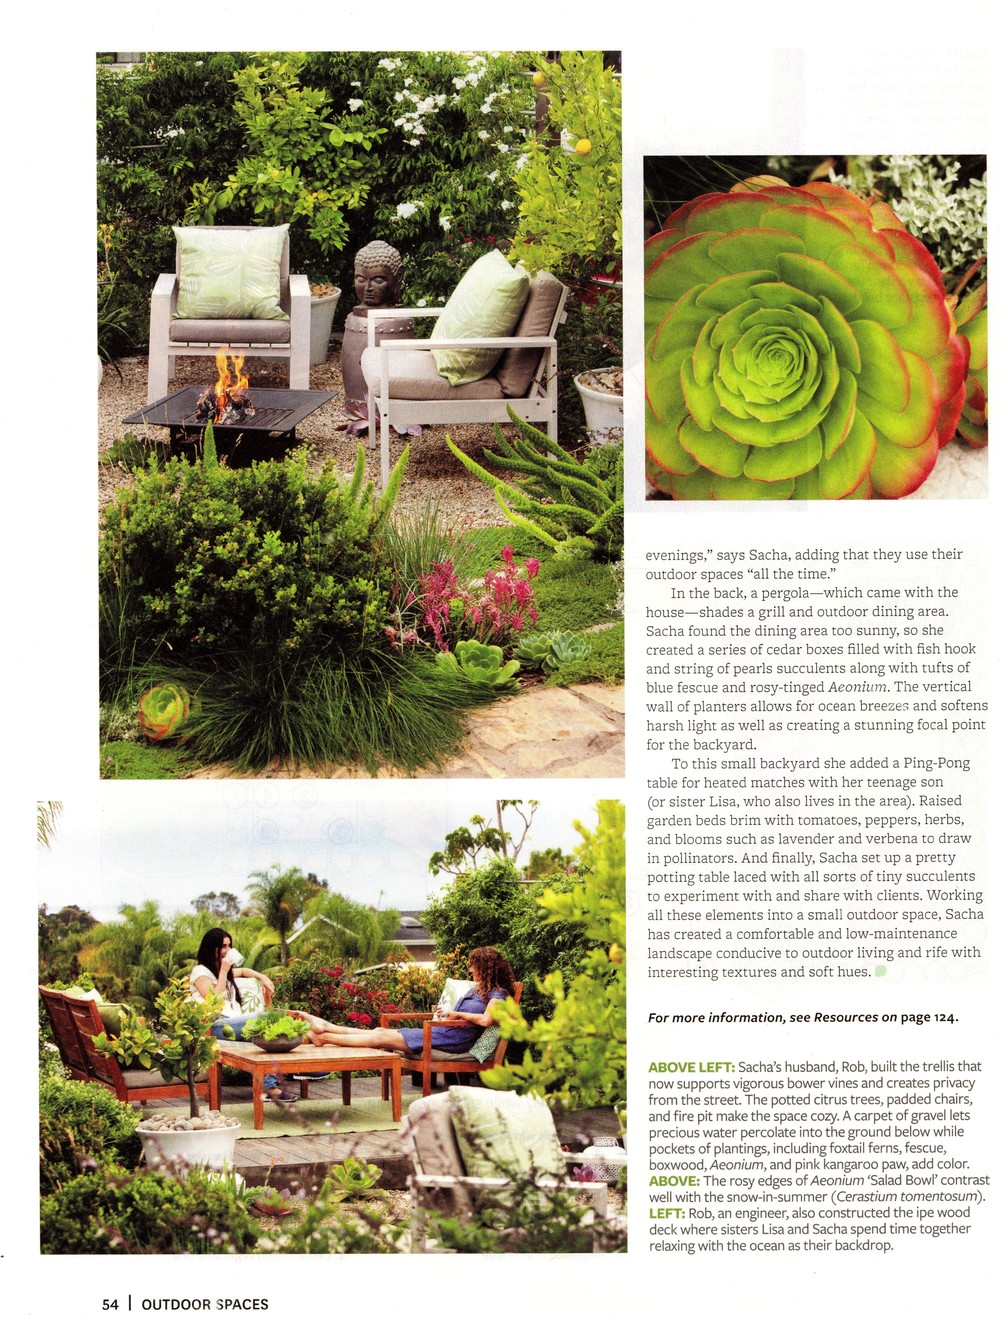 Outdoor Spaces_page 720160320_18173997.jpg